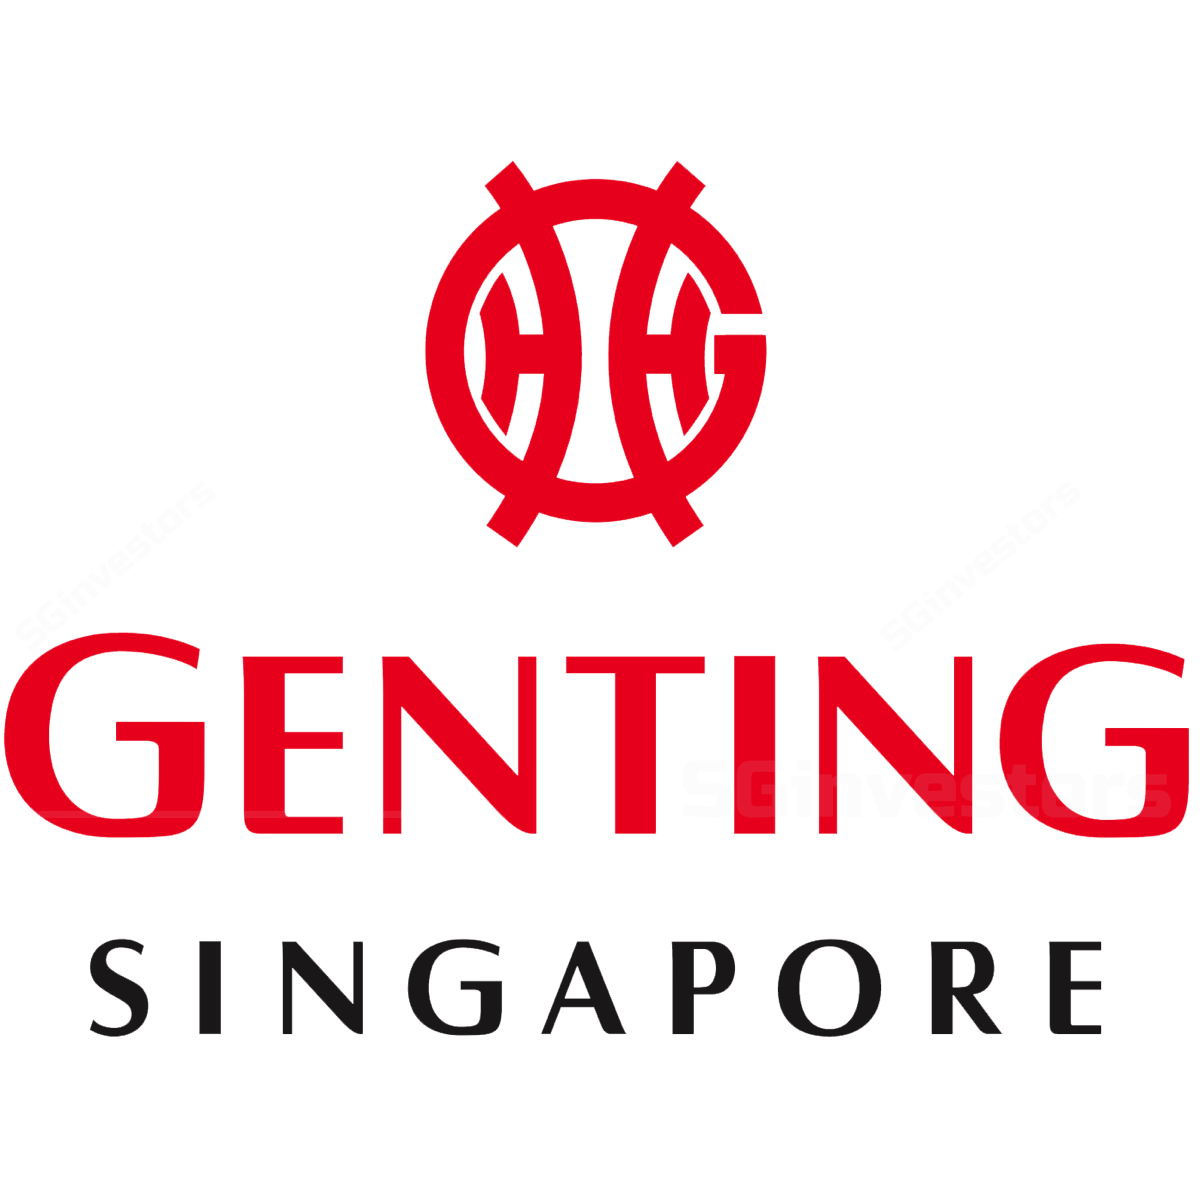 Genting Singapore - CGS-CIMB 2018-05-10: 1q18 Clawing Market Share To A Strong Quarter